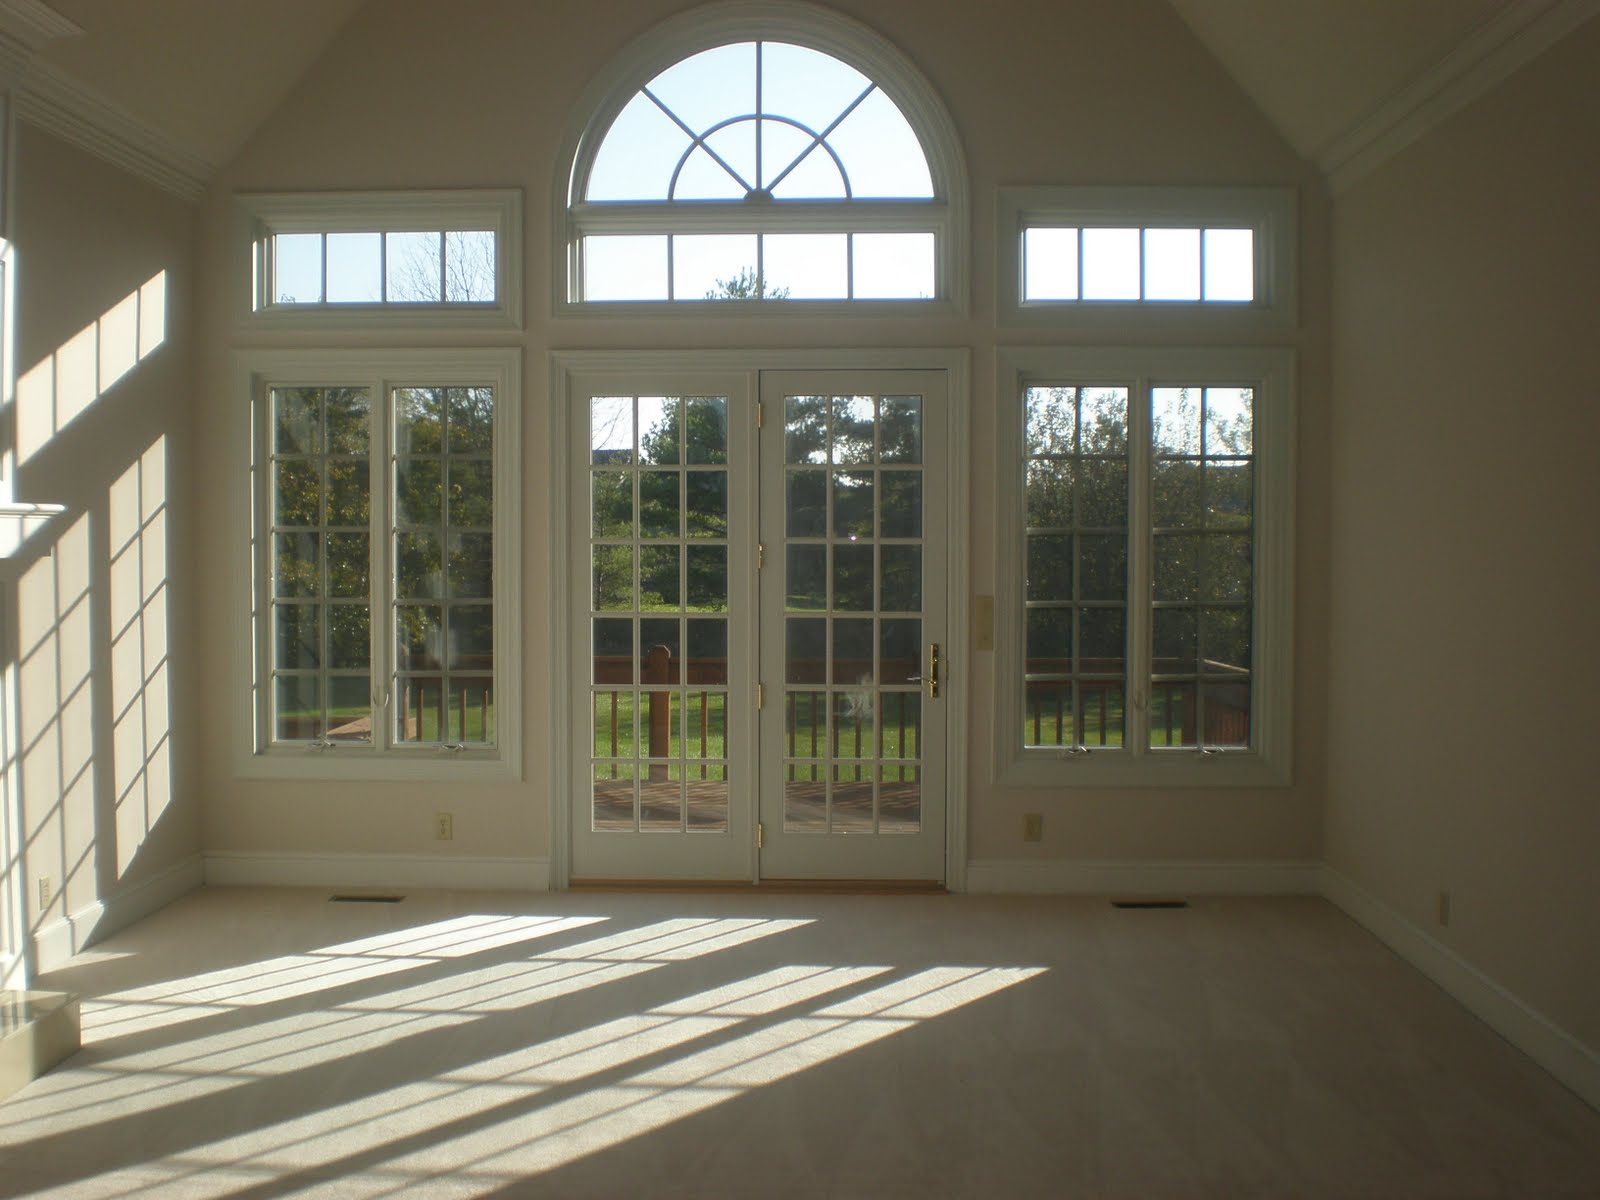 8 foot tall french wood swing door.. Special installation procedure used to minimize any toxins the the home due to home owner health ... & CASEMENT WITH TRANSOM AND CIRCLE TOP | dallas-beewindow